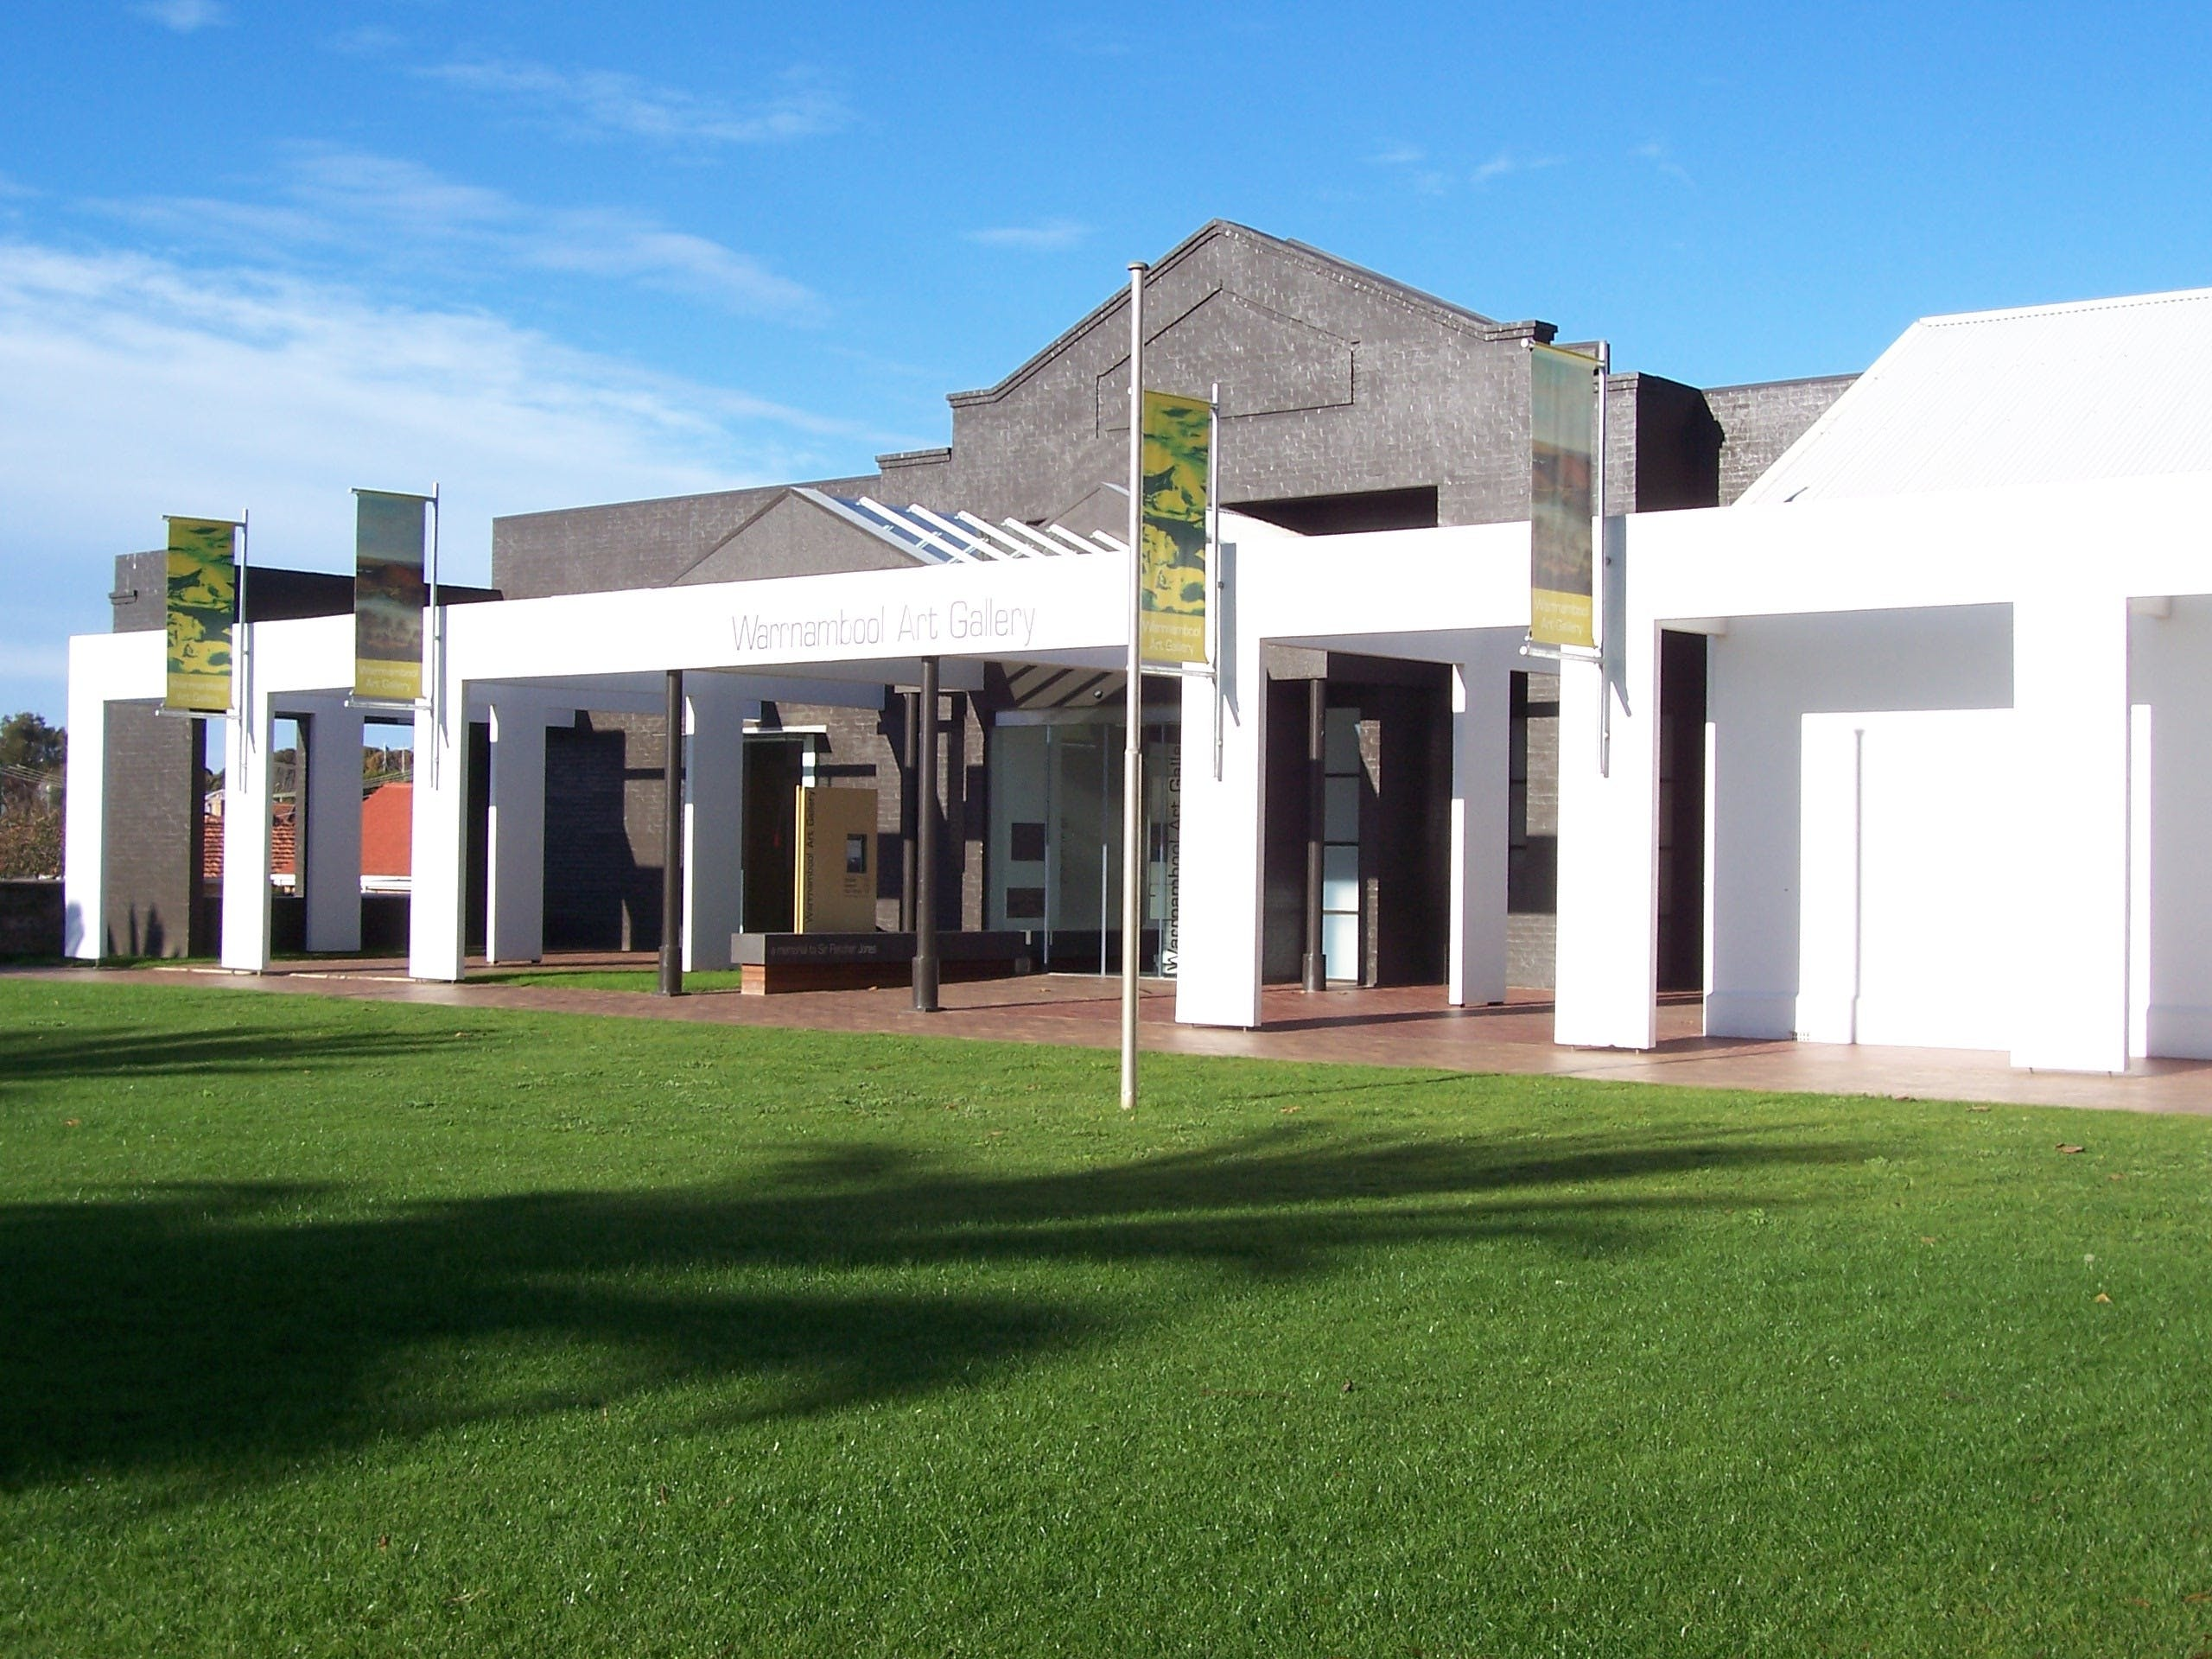 Warrnambool Art Gallery - eAccommodation